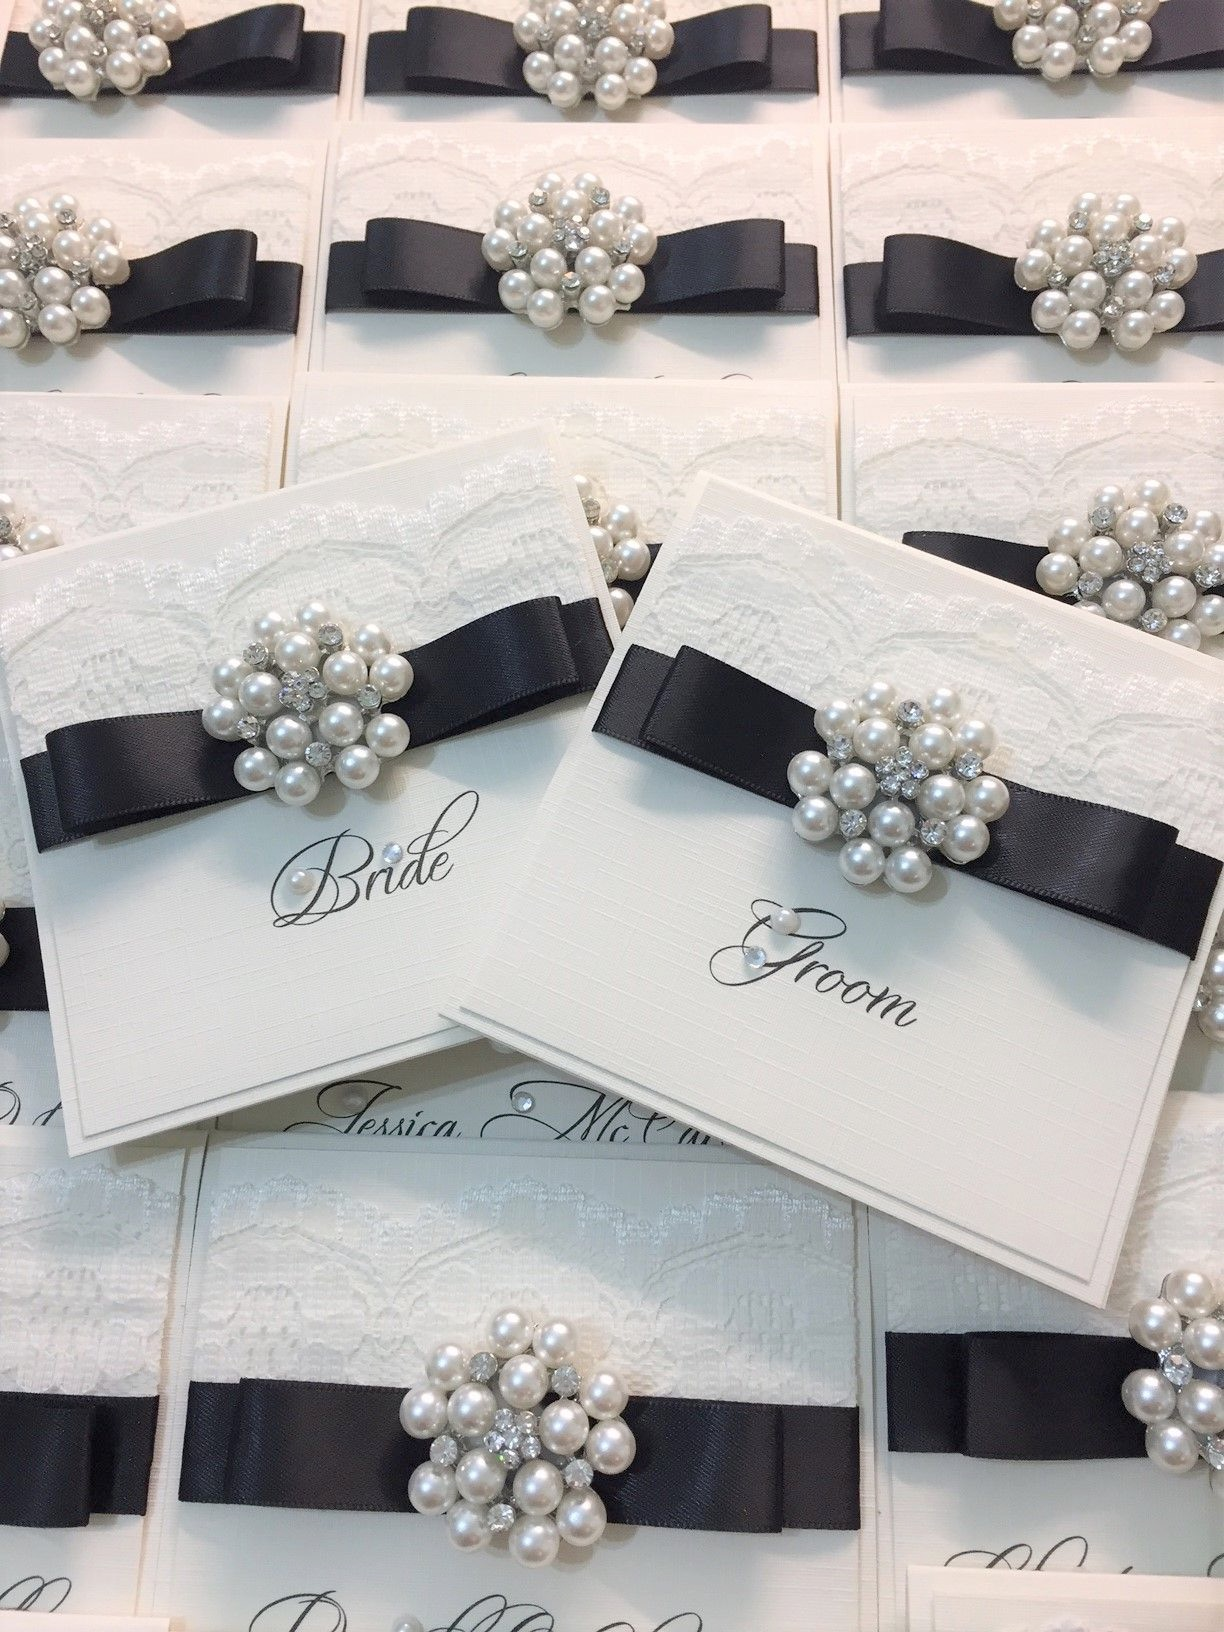 place name cards with brooch lace and black ribbon bow